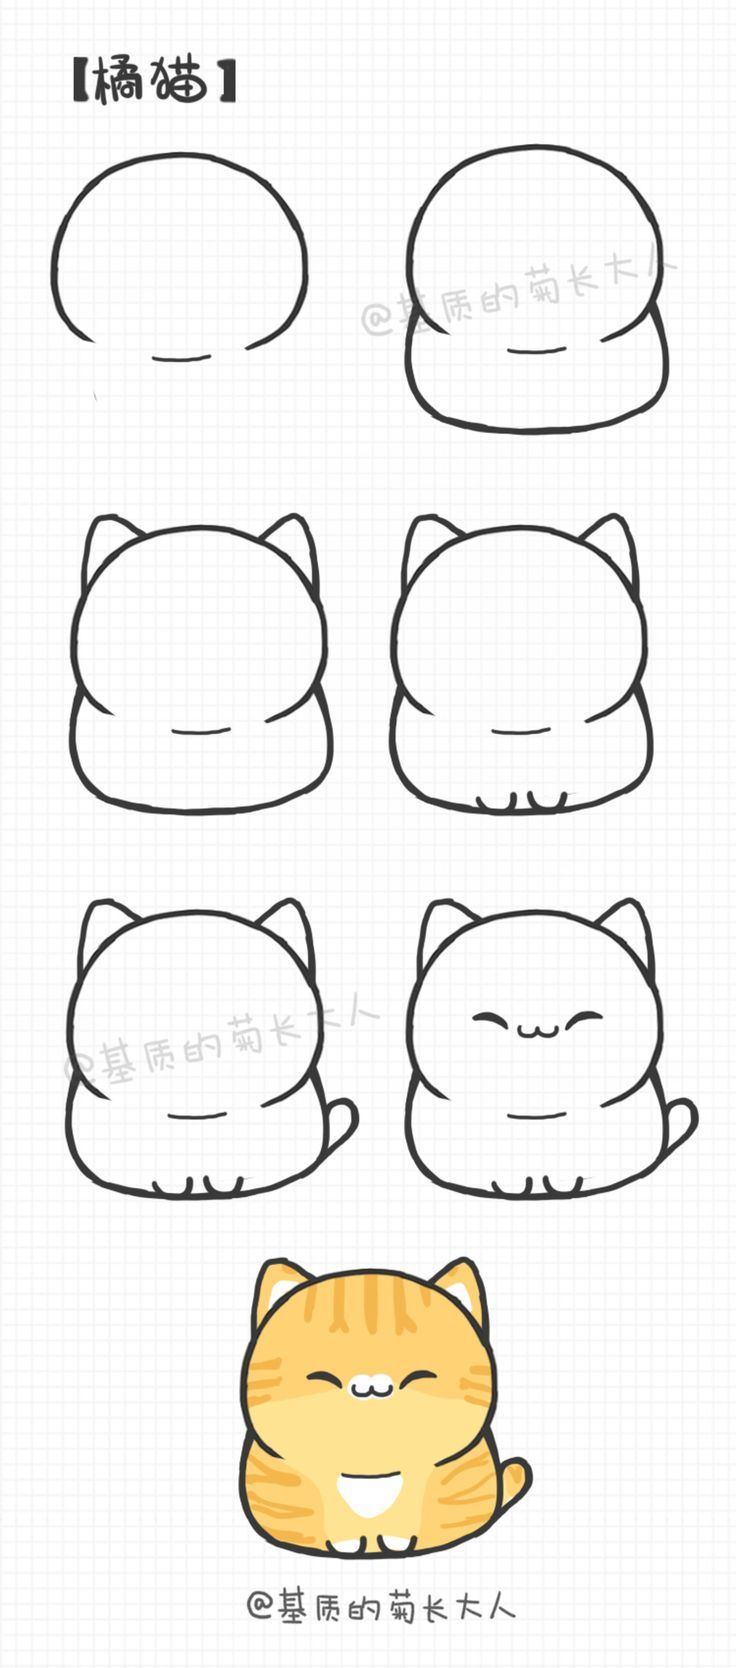 Learn To Draw An Adorable Cat With This Step By Step Drawing